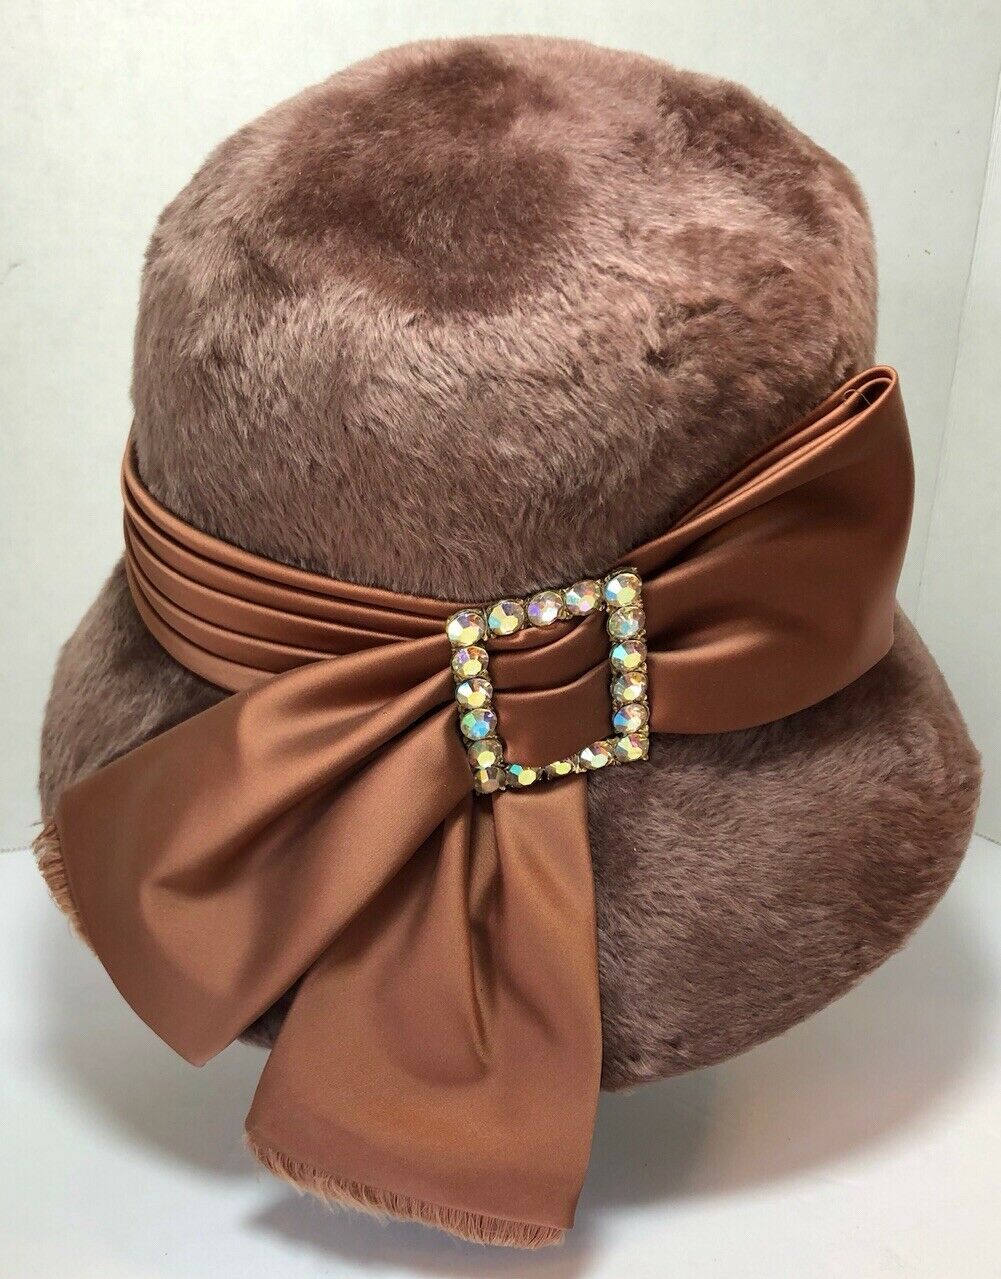 Vintage 60s Fur Felt Hat by Milady Mocha Brown Hat with Silky Feather Print Fabric Band.Mod Cloche Style Hat